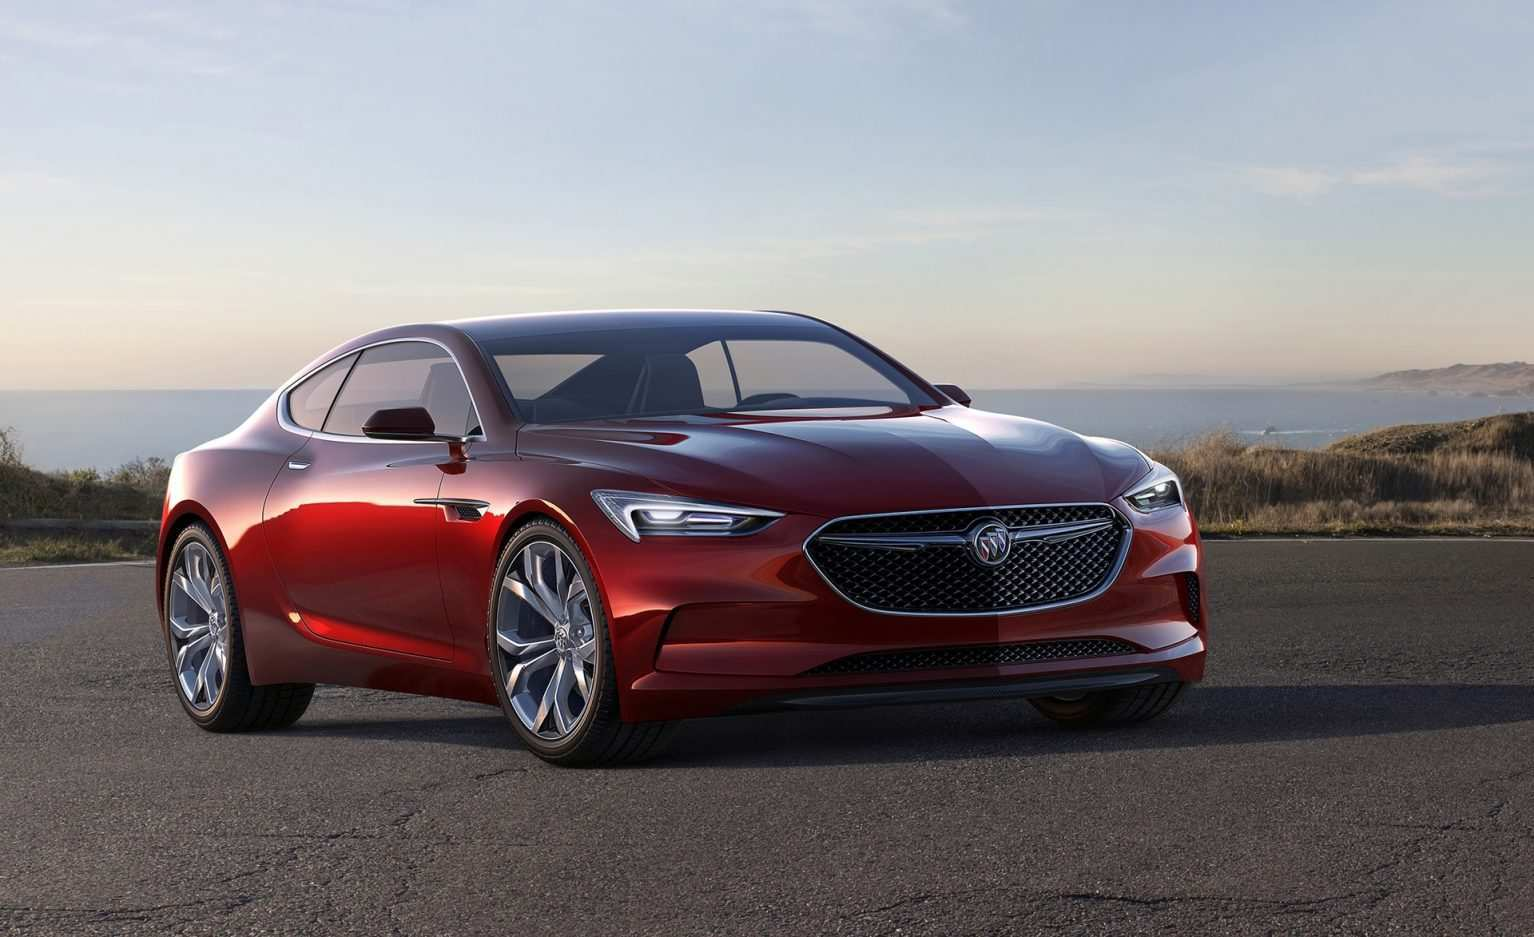 60 Concept of New 2019 Buick Sports Car Redesign Ratings by New 2019 Buick Sports Car Redesign